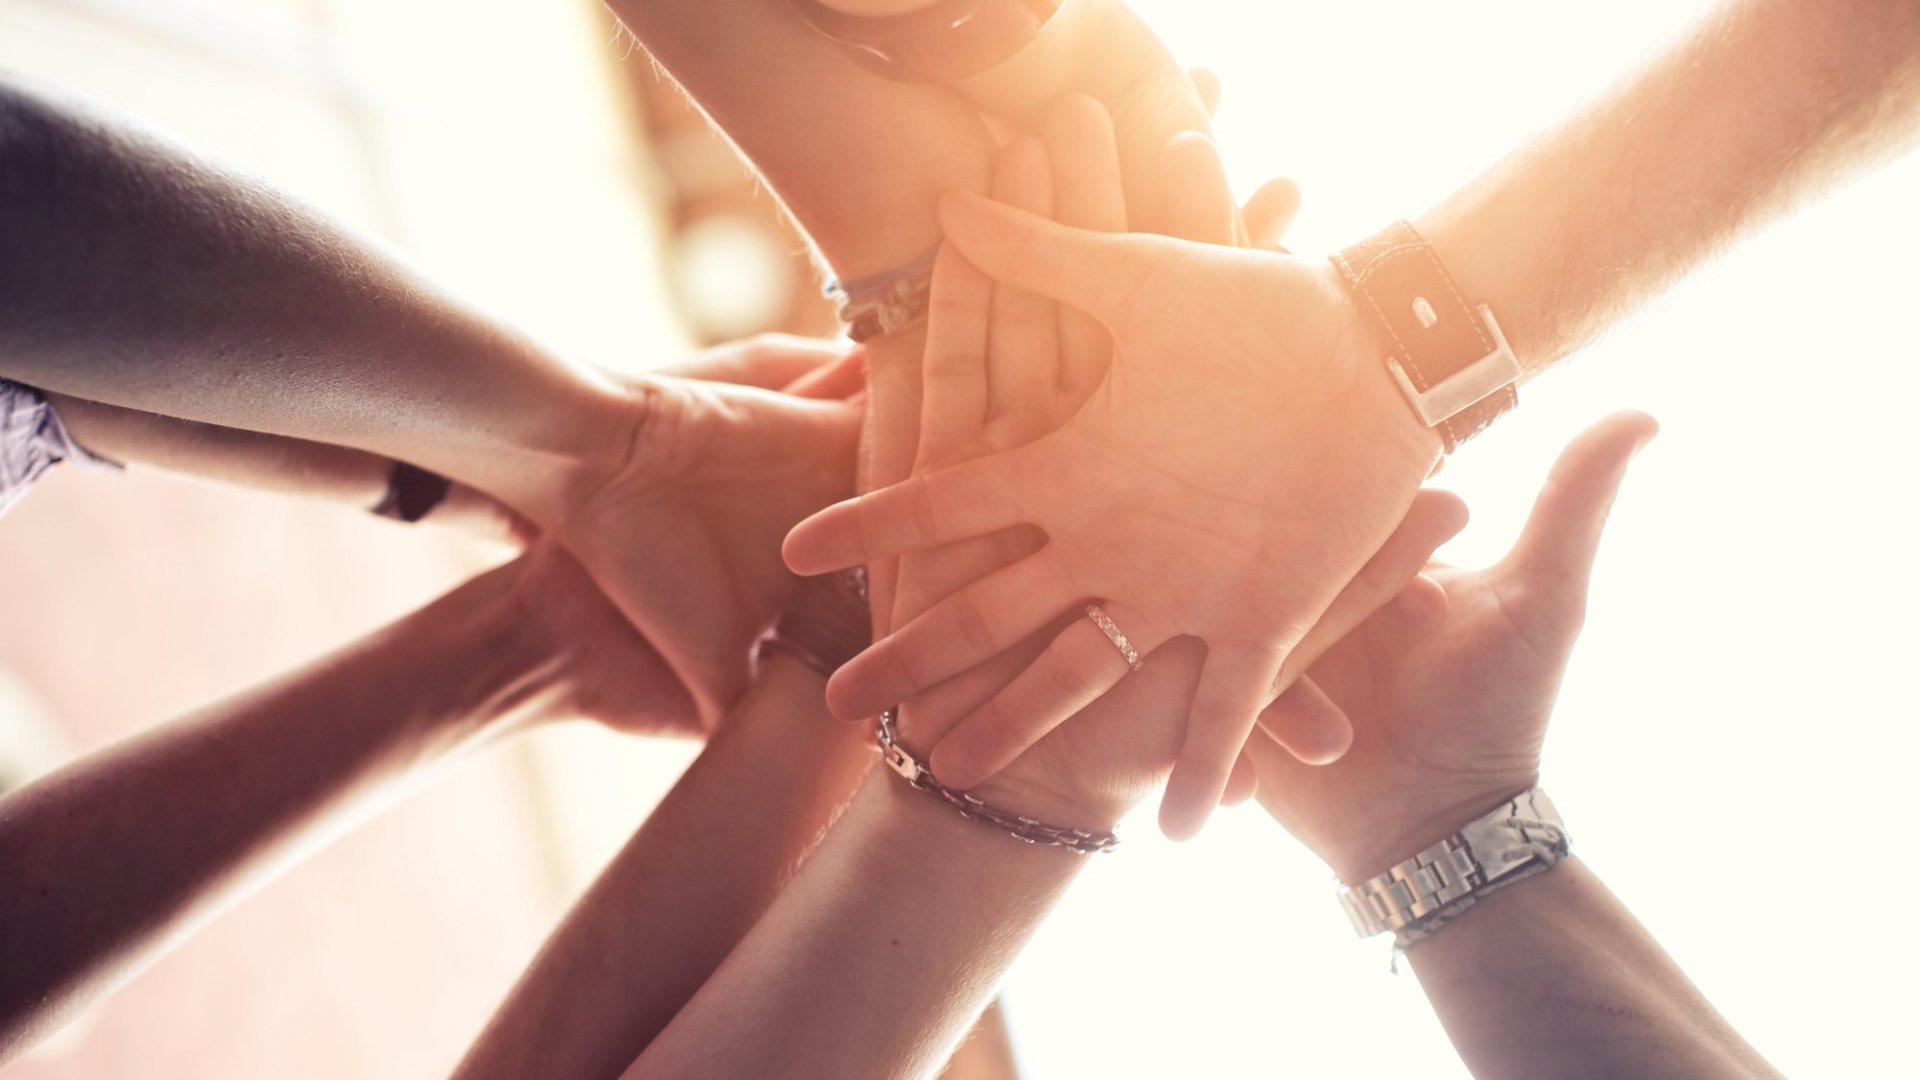 Don't Build Just a Great Company Culture: 7 Ways to Build a Real Community